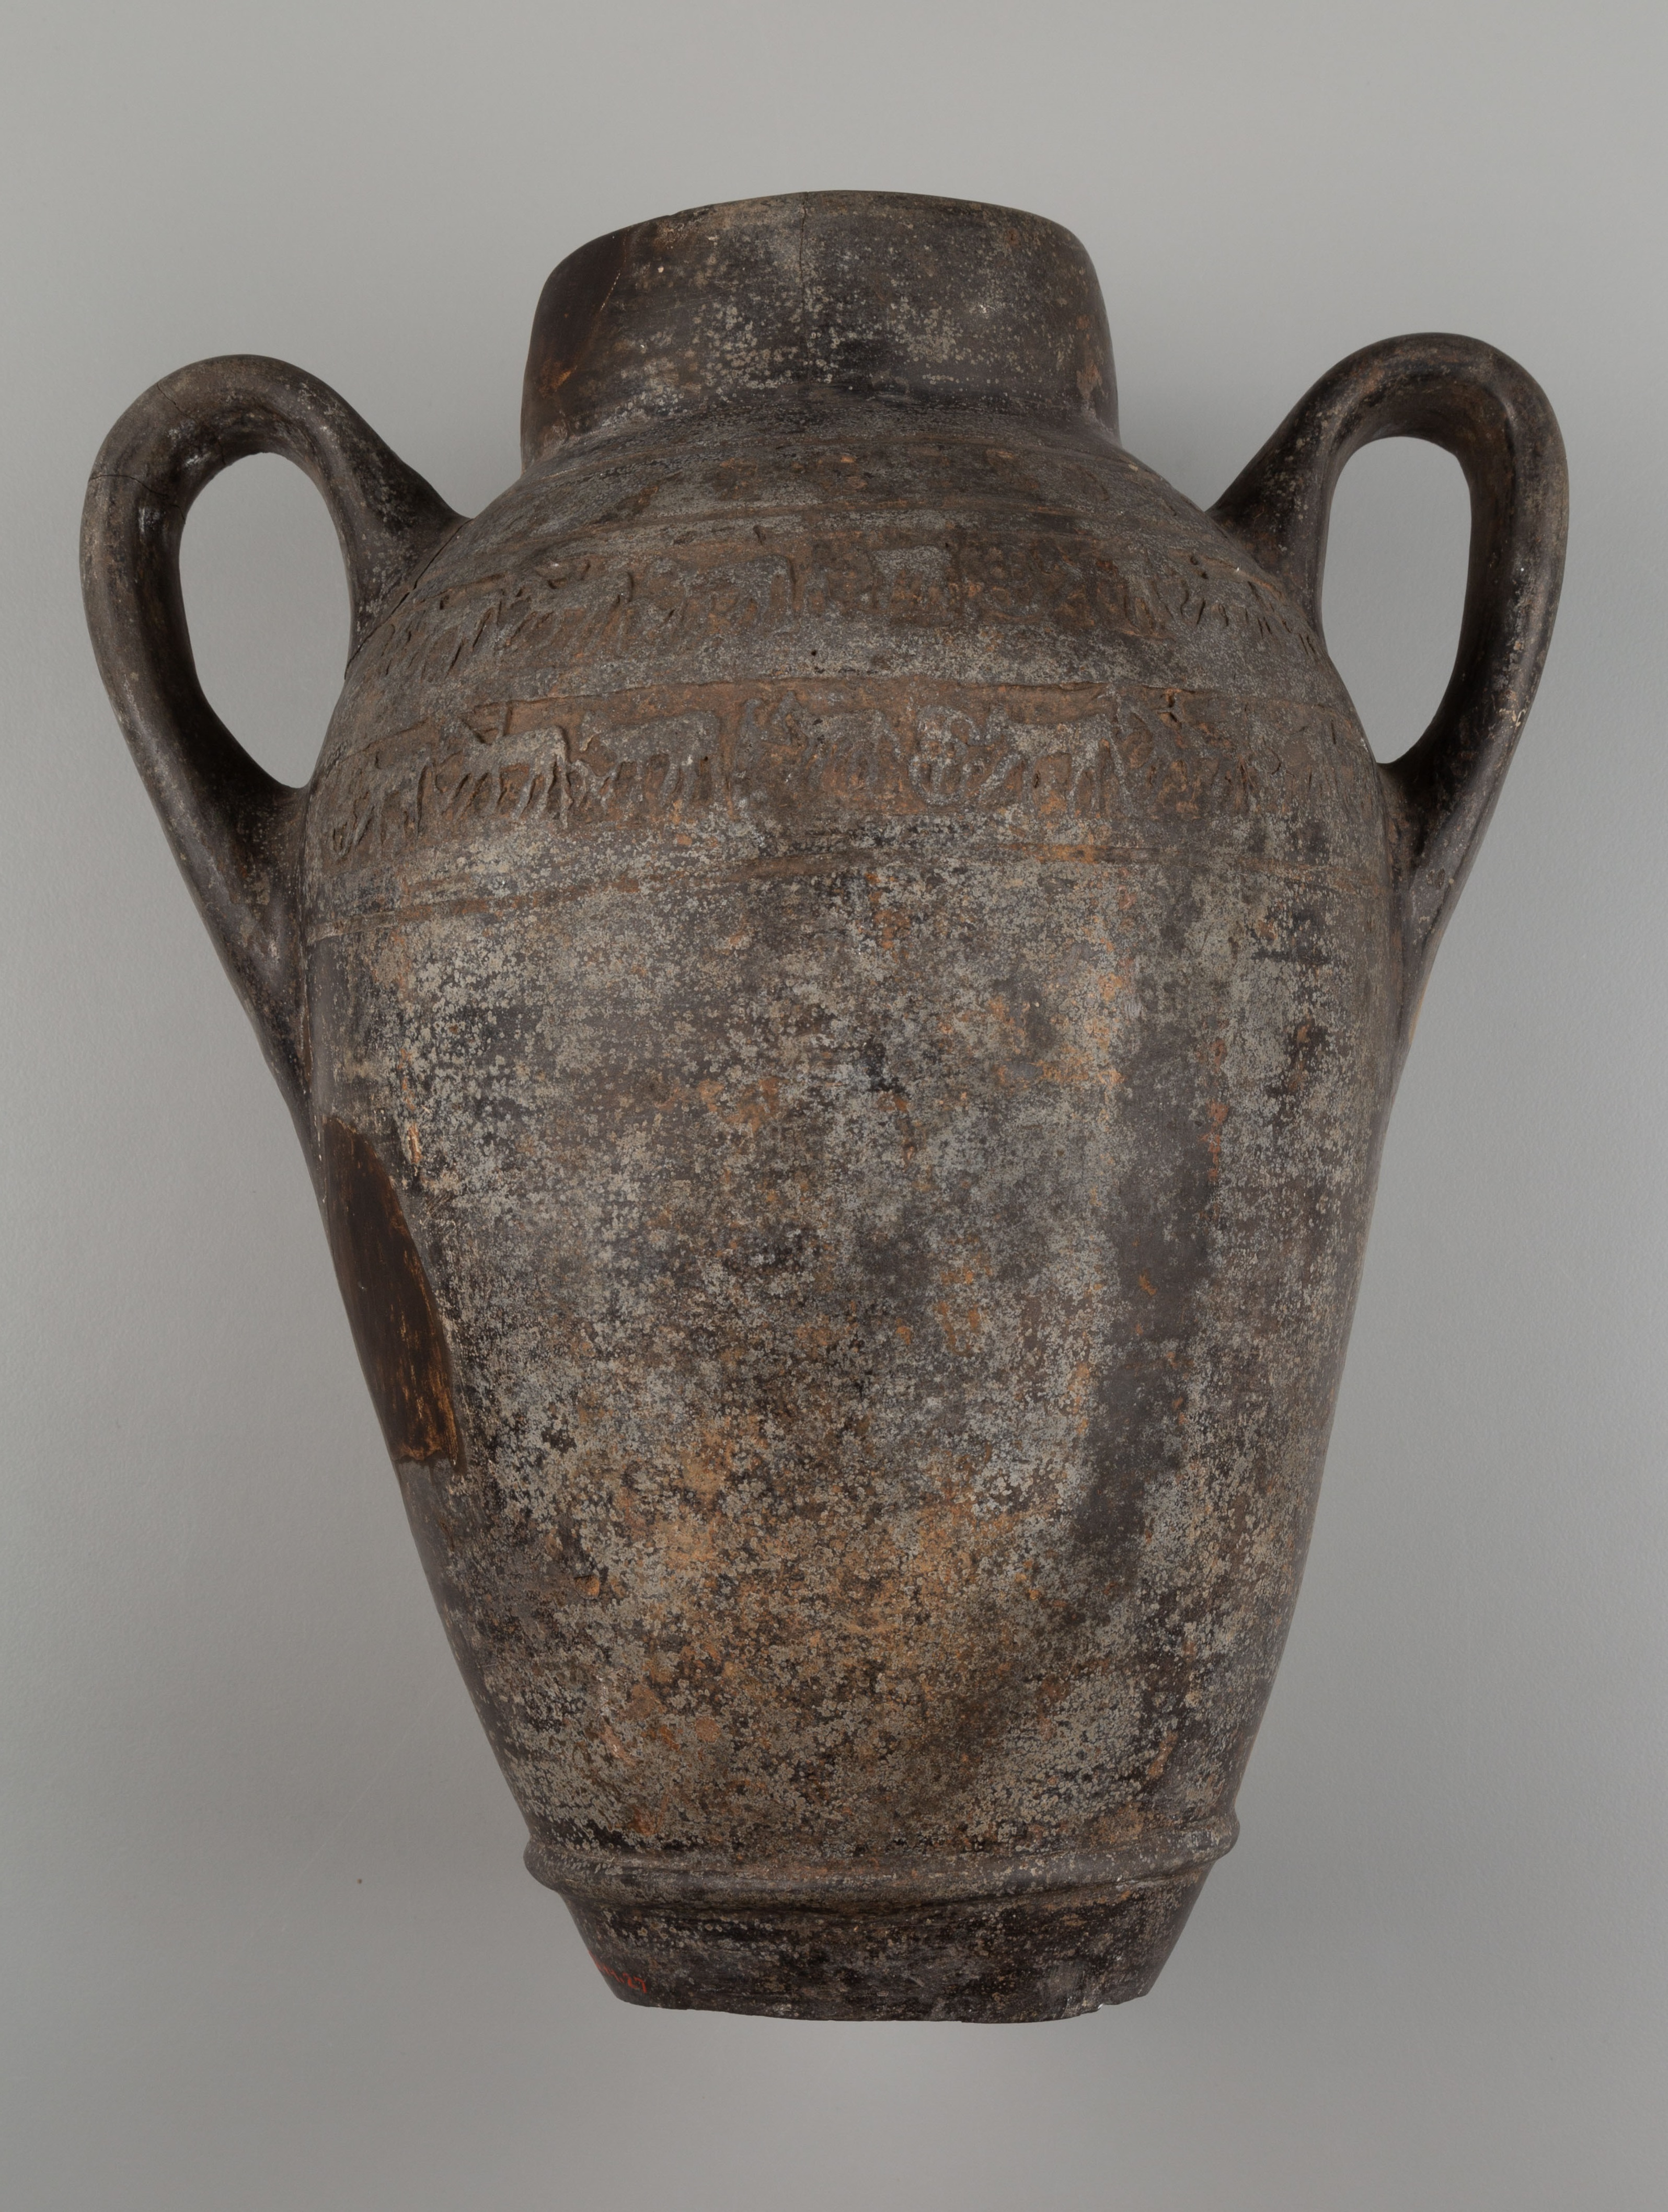 This photograph shows a side view of a vessel with two curved handles and no base. There are pale surface encrustations and one small area that is darker in color on the left.